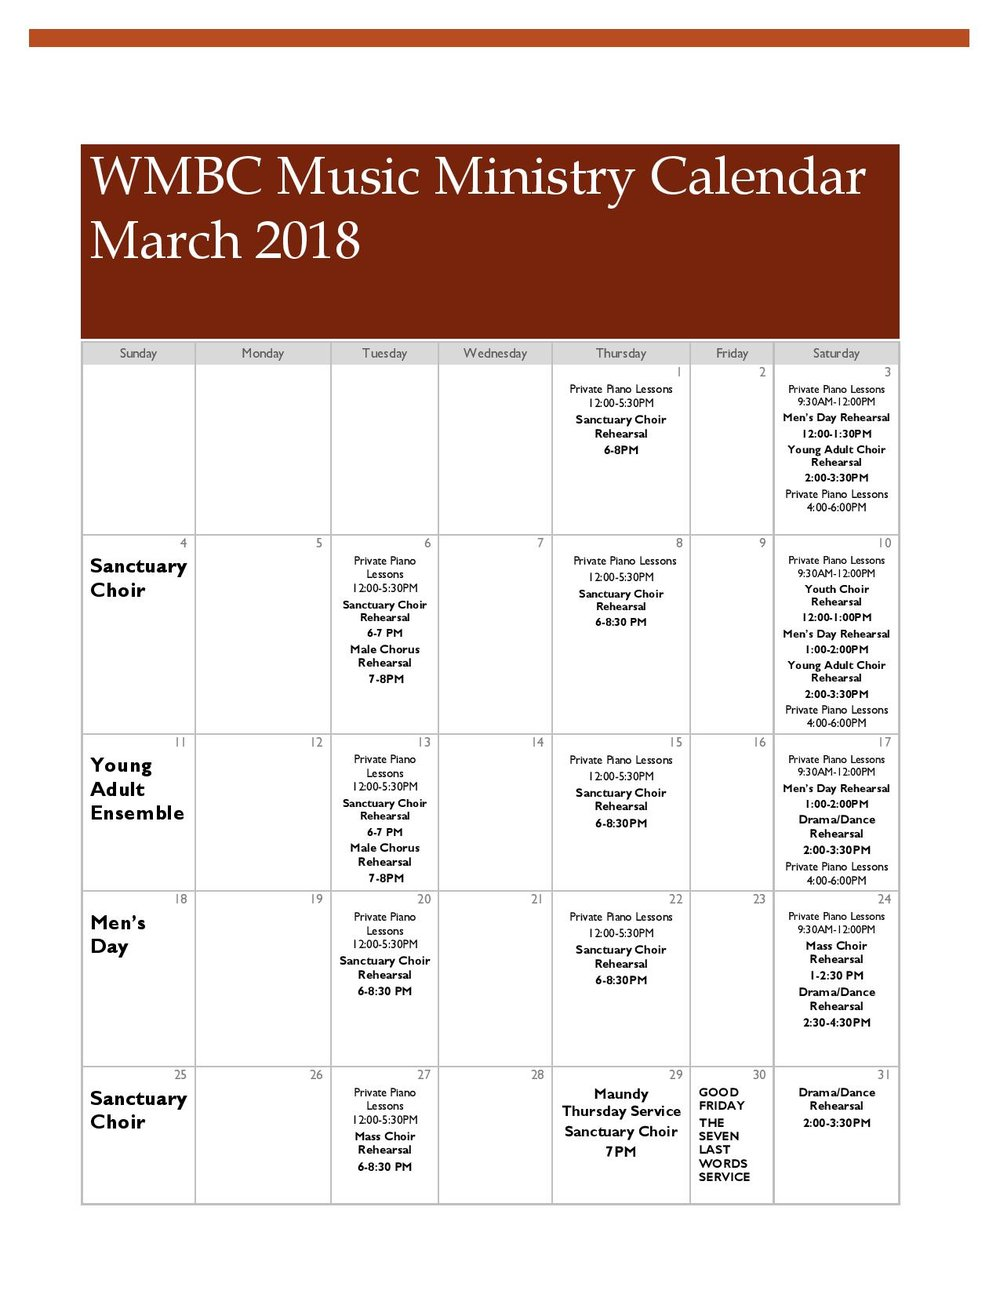 WMBC Music Ministry Newsletter March 2018-page-005 (1).jpg